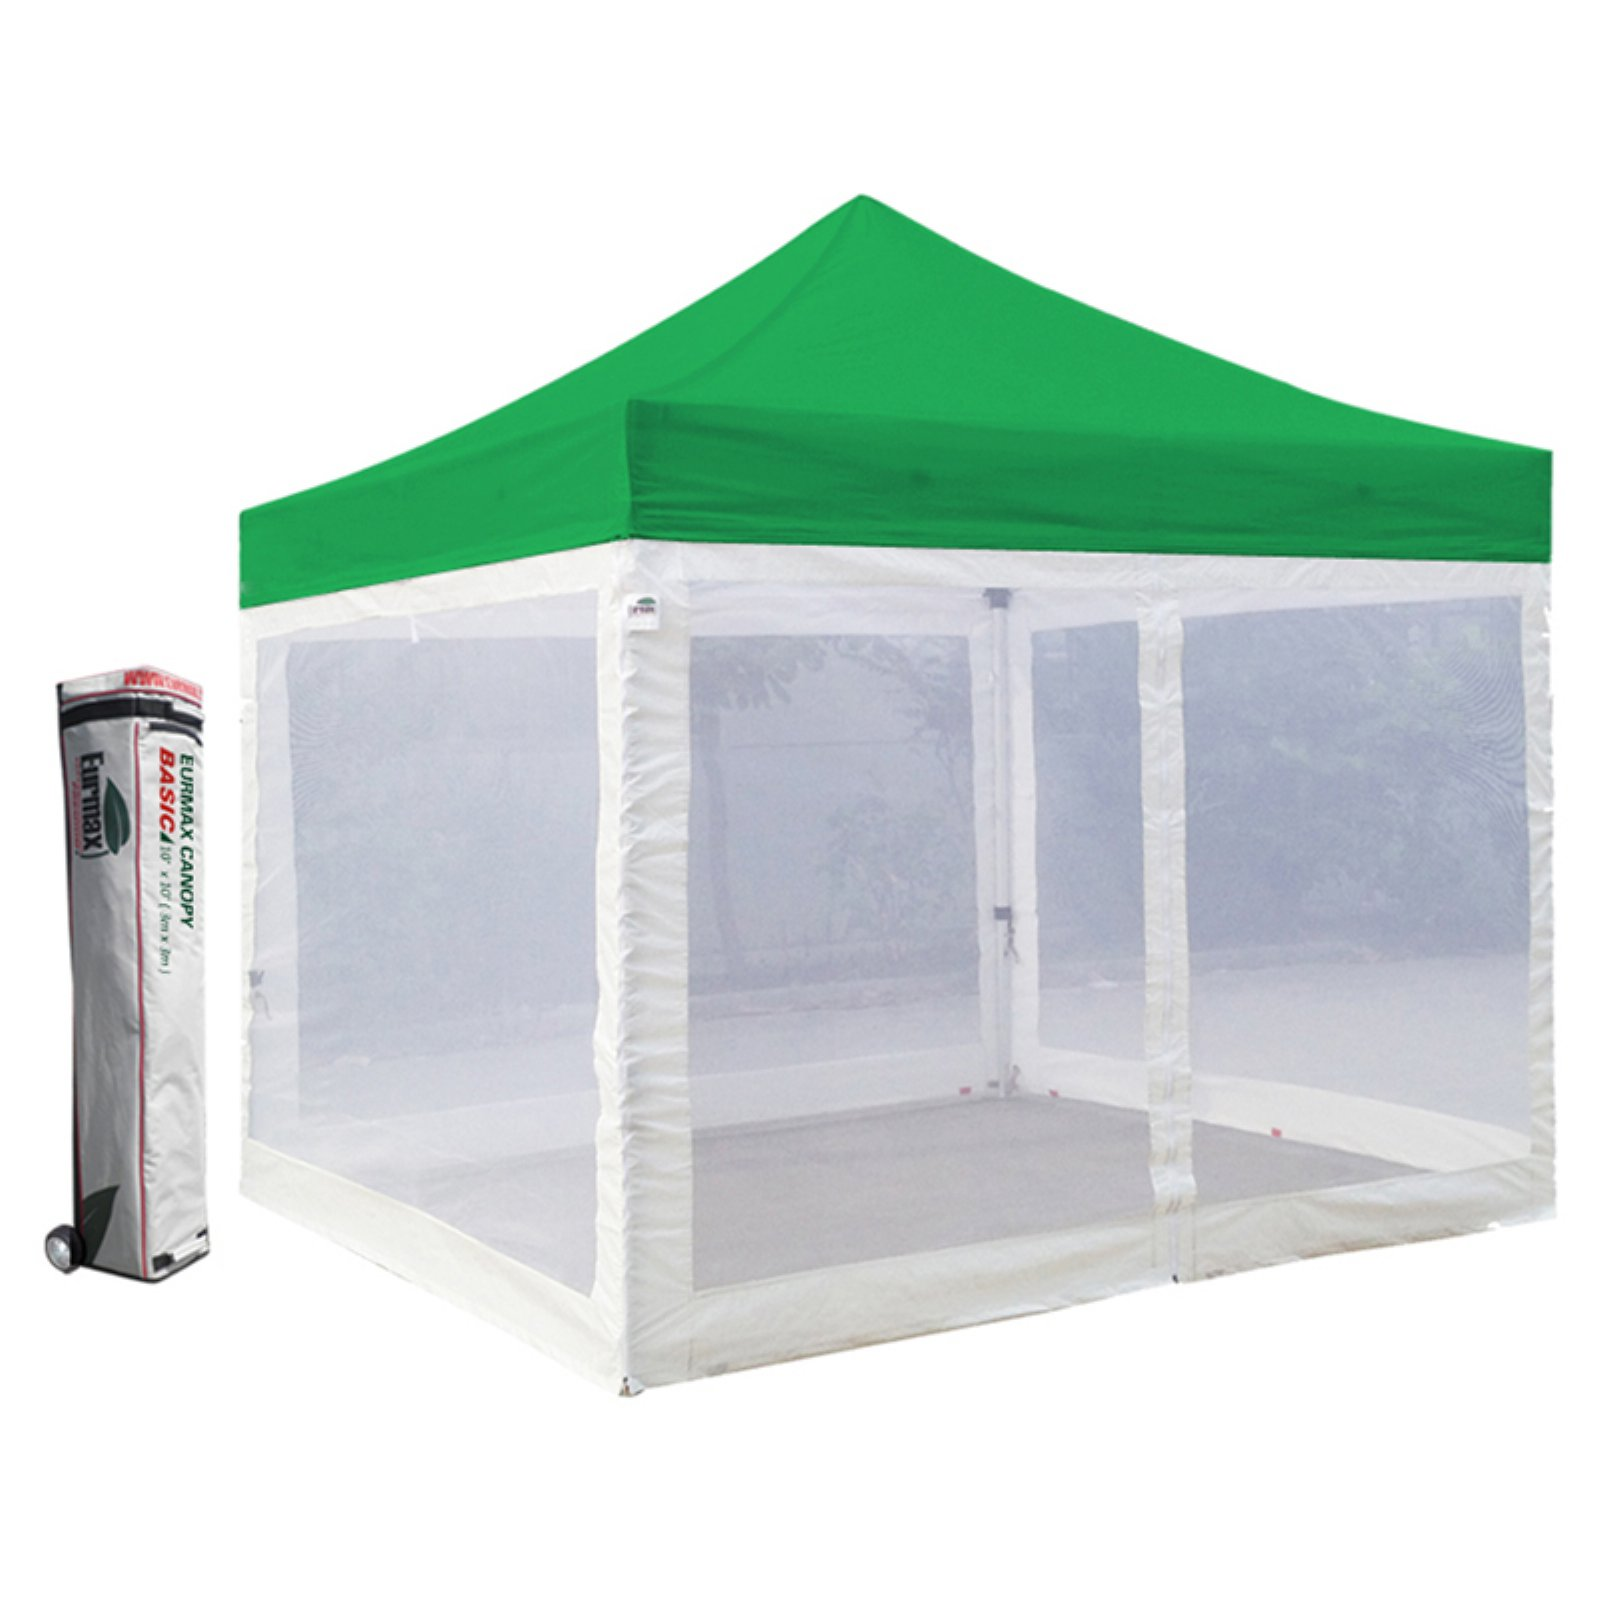 Eurmax Canopy Inc Commercial 10 x 10 ft. Screen Wall Canopy Tent